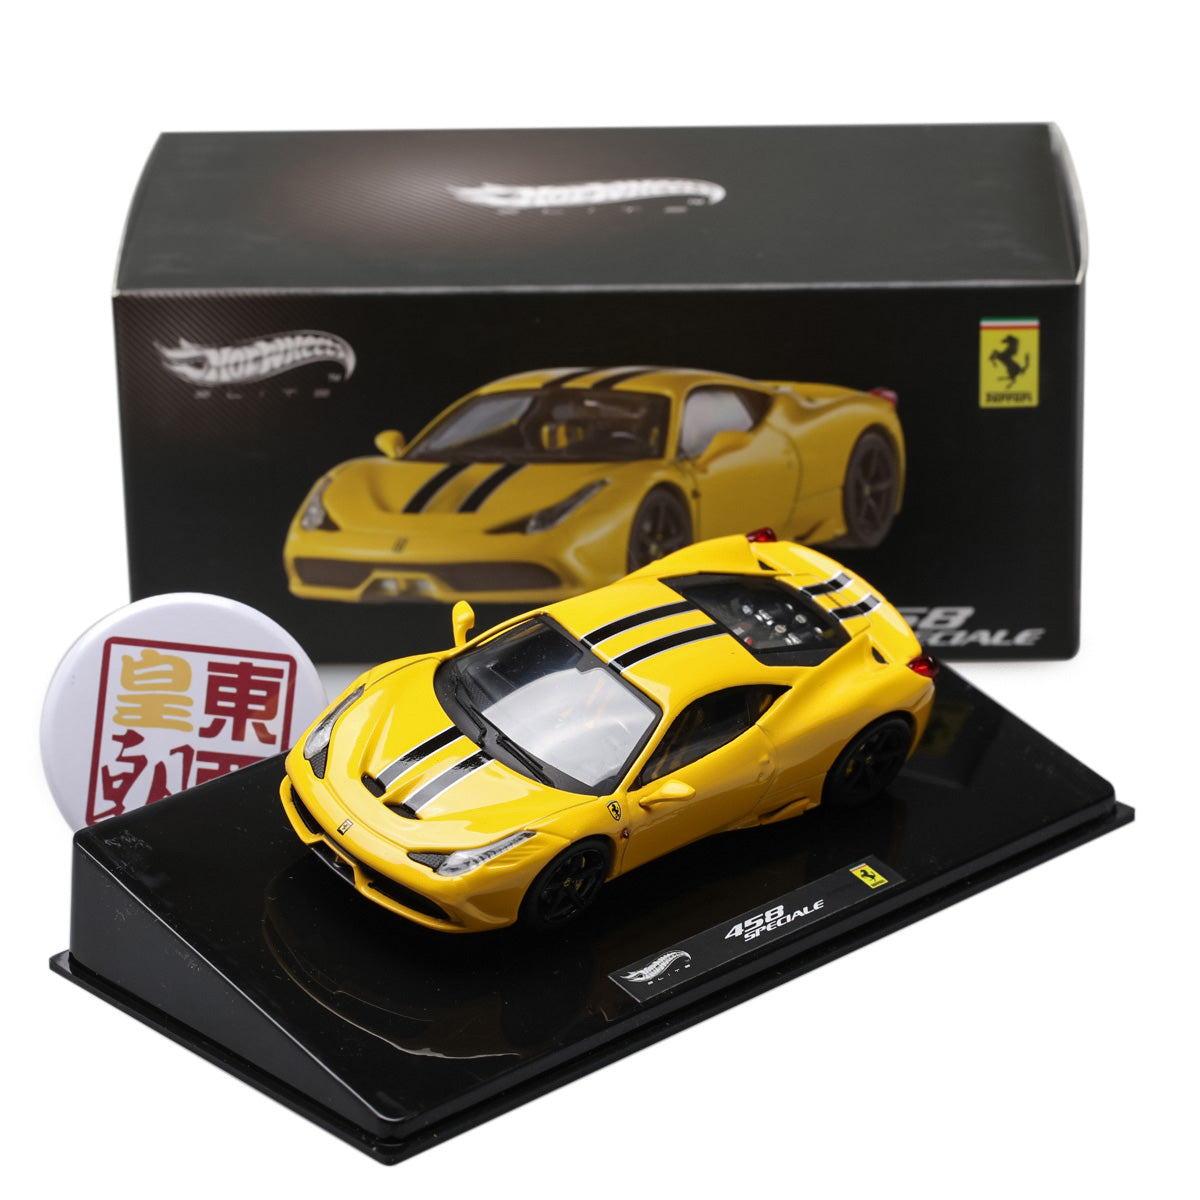 Hot Wheels Elite 1:43 Ferrari 458 Italia Special 2013 Yellow Diecast Model Car BLY46